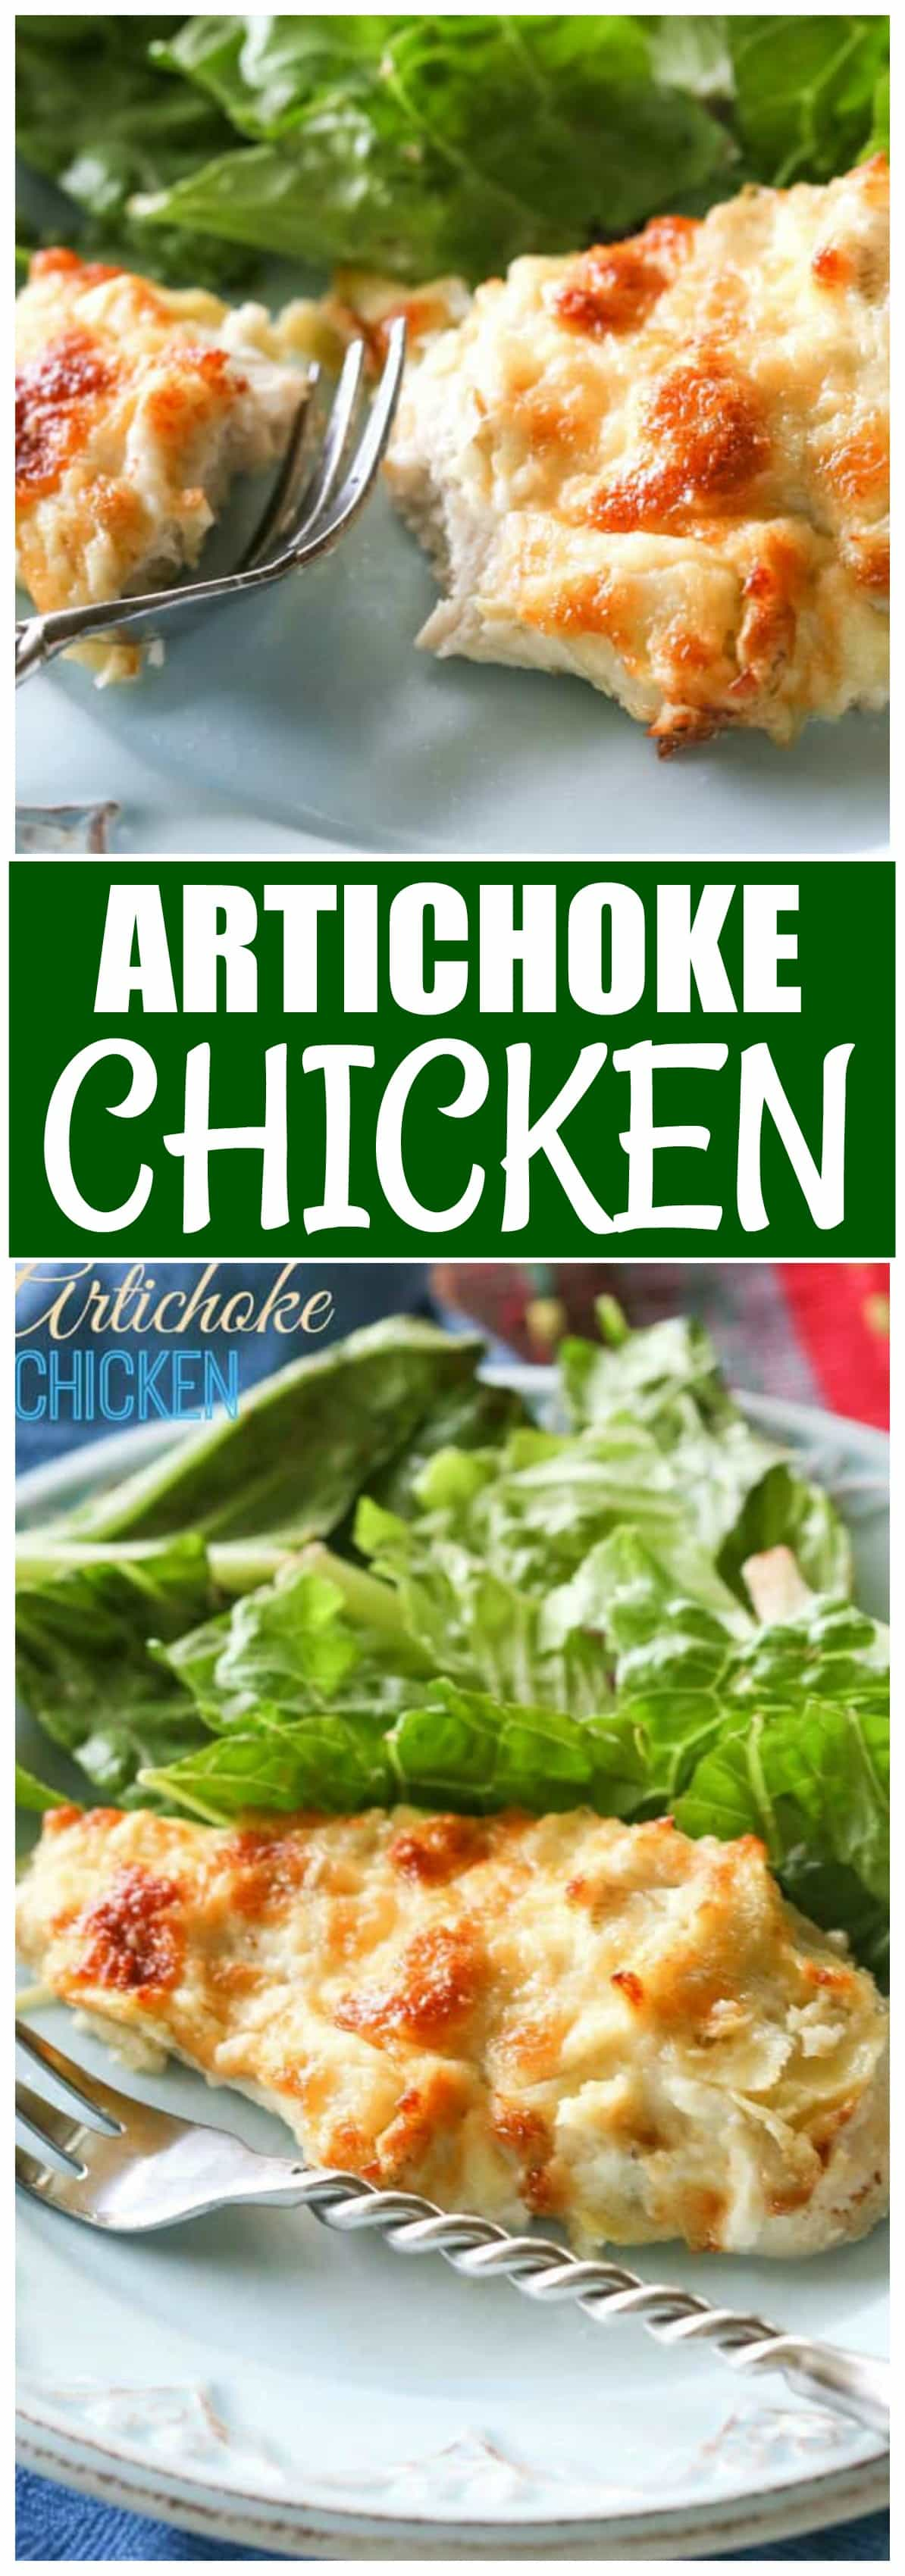 This Artichoke Chicken is a simple and easy meal that is delicious! It tastes like artichoke dip on top of chicken. #artichoke #chicken #dinner #easy #recipe